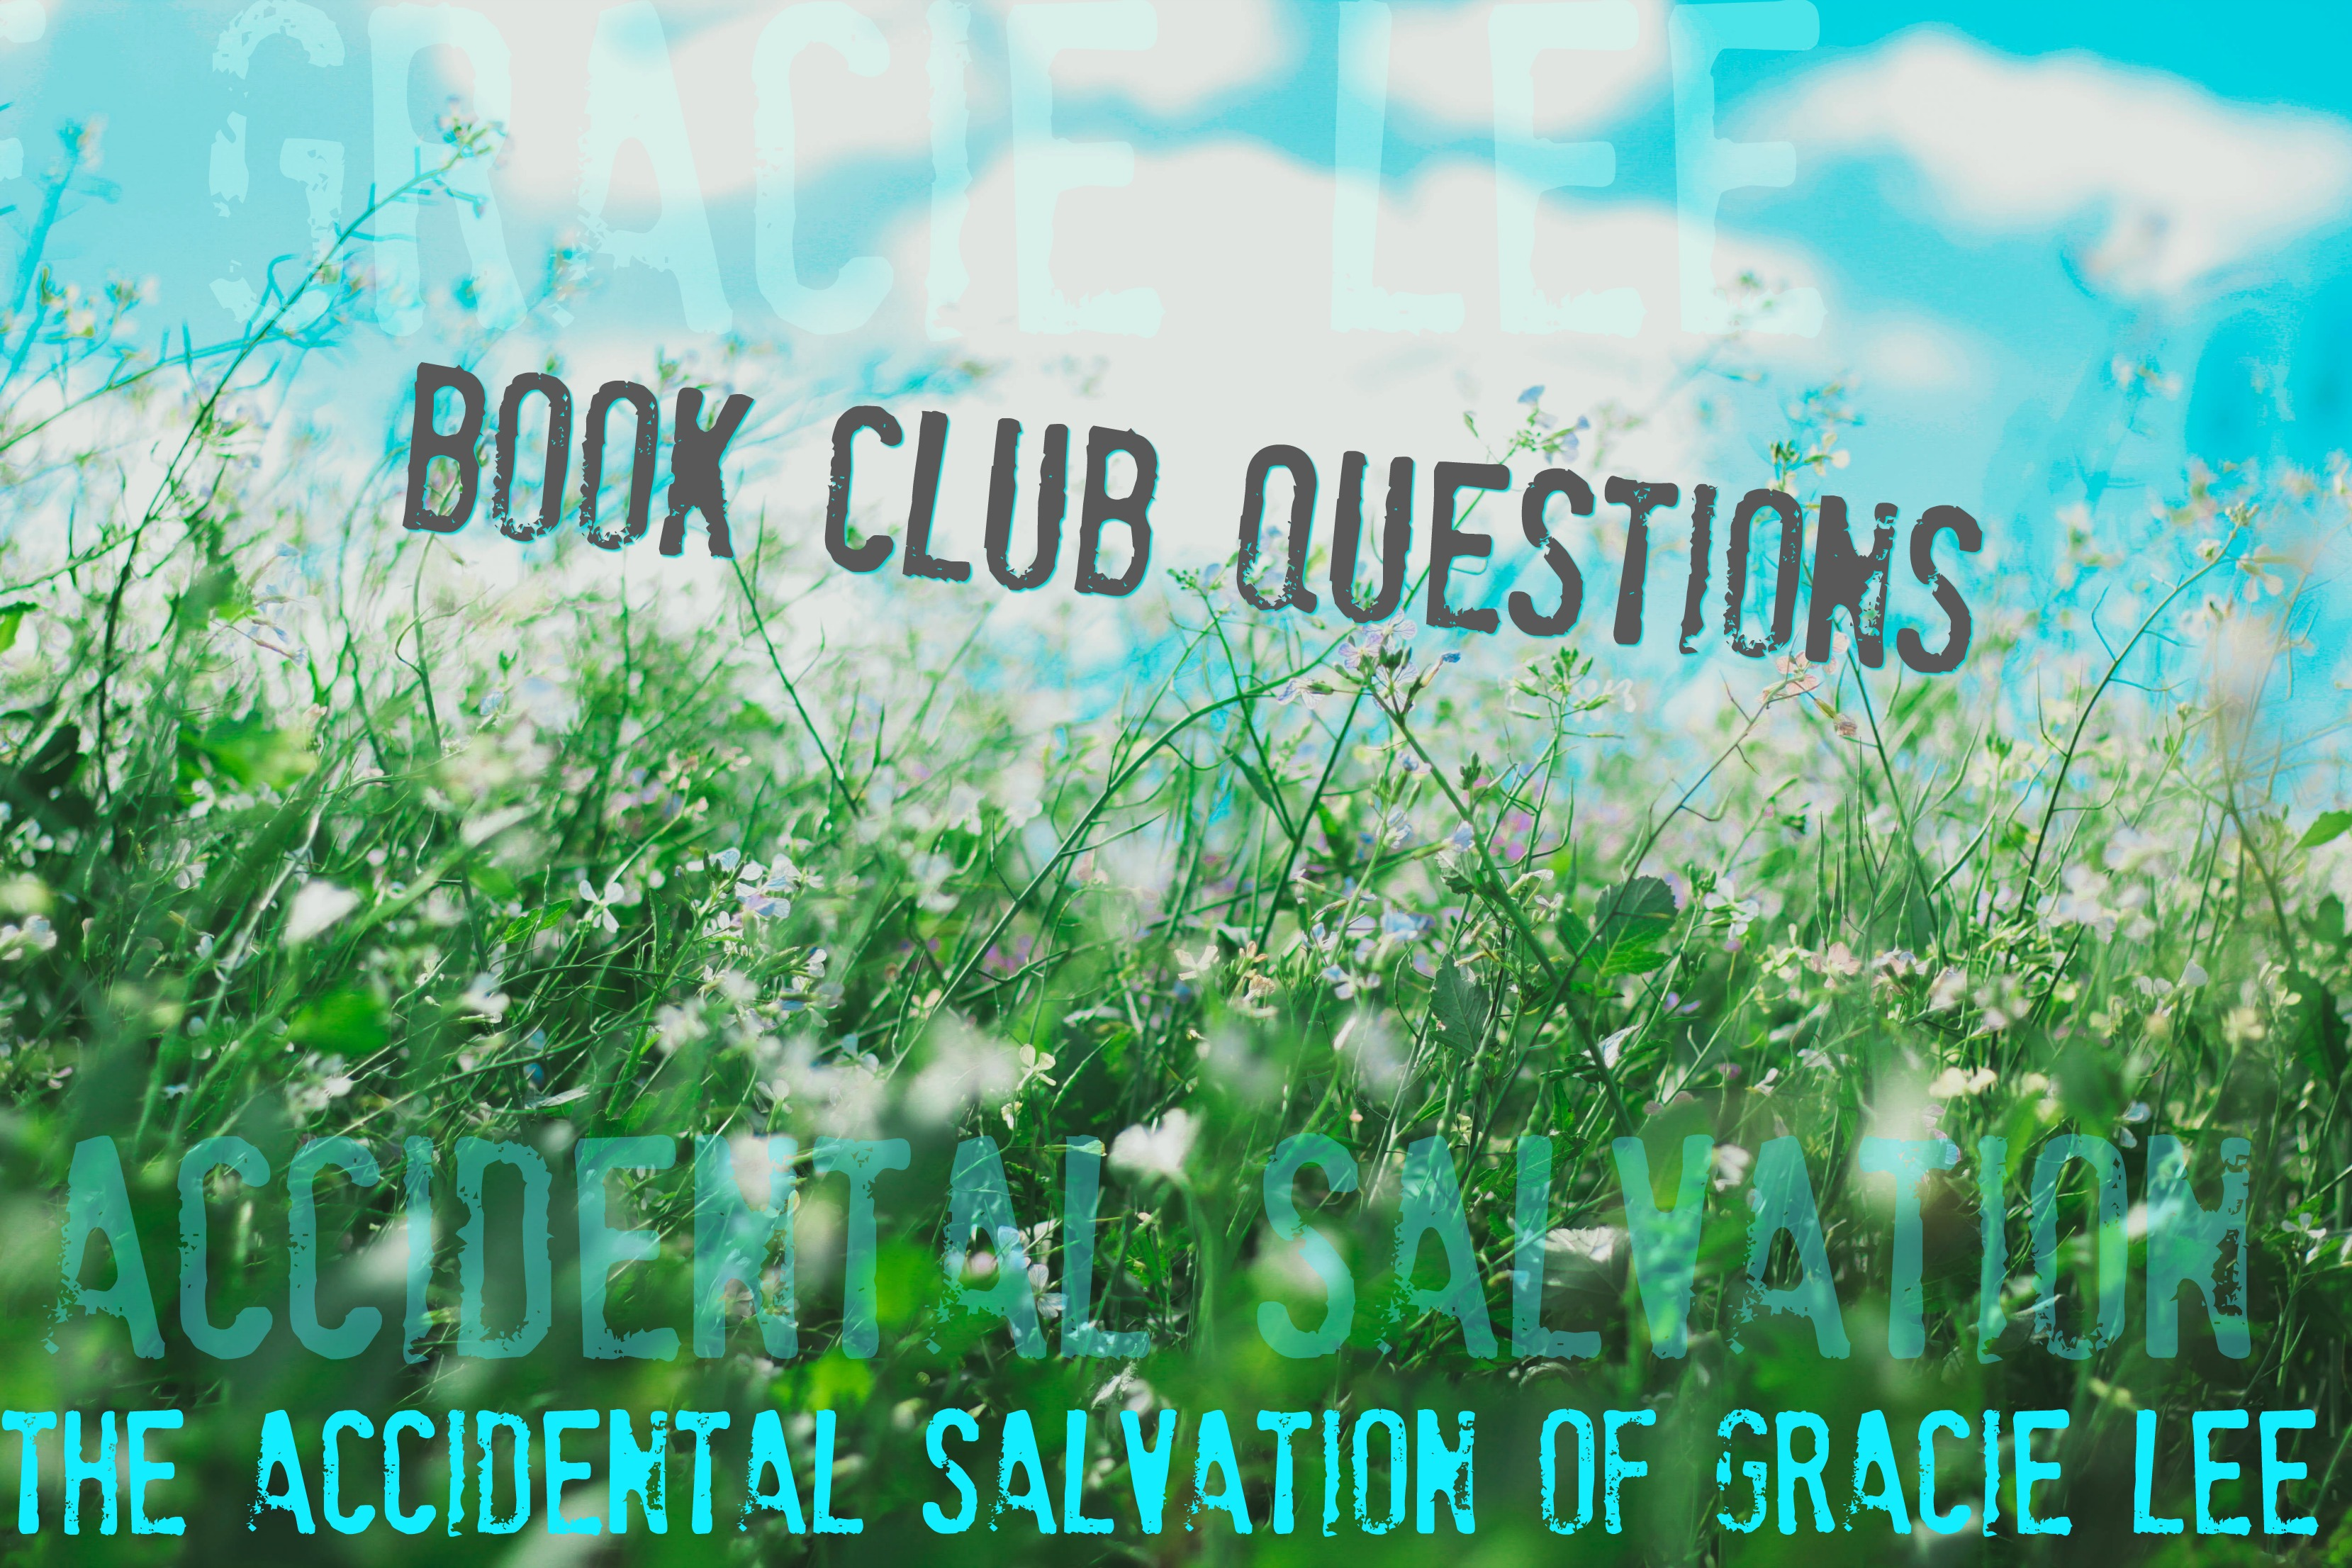 The Accidental Salvation of Gracie Lee - Book Club Questions